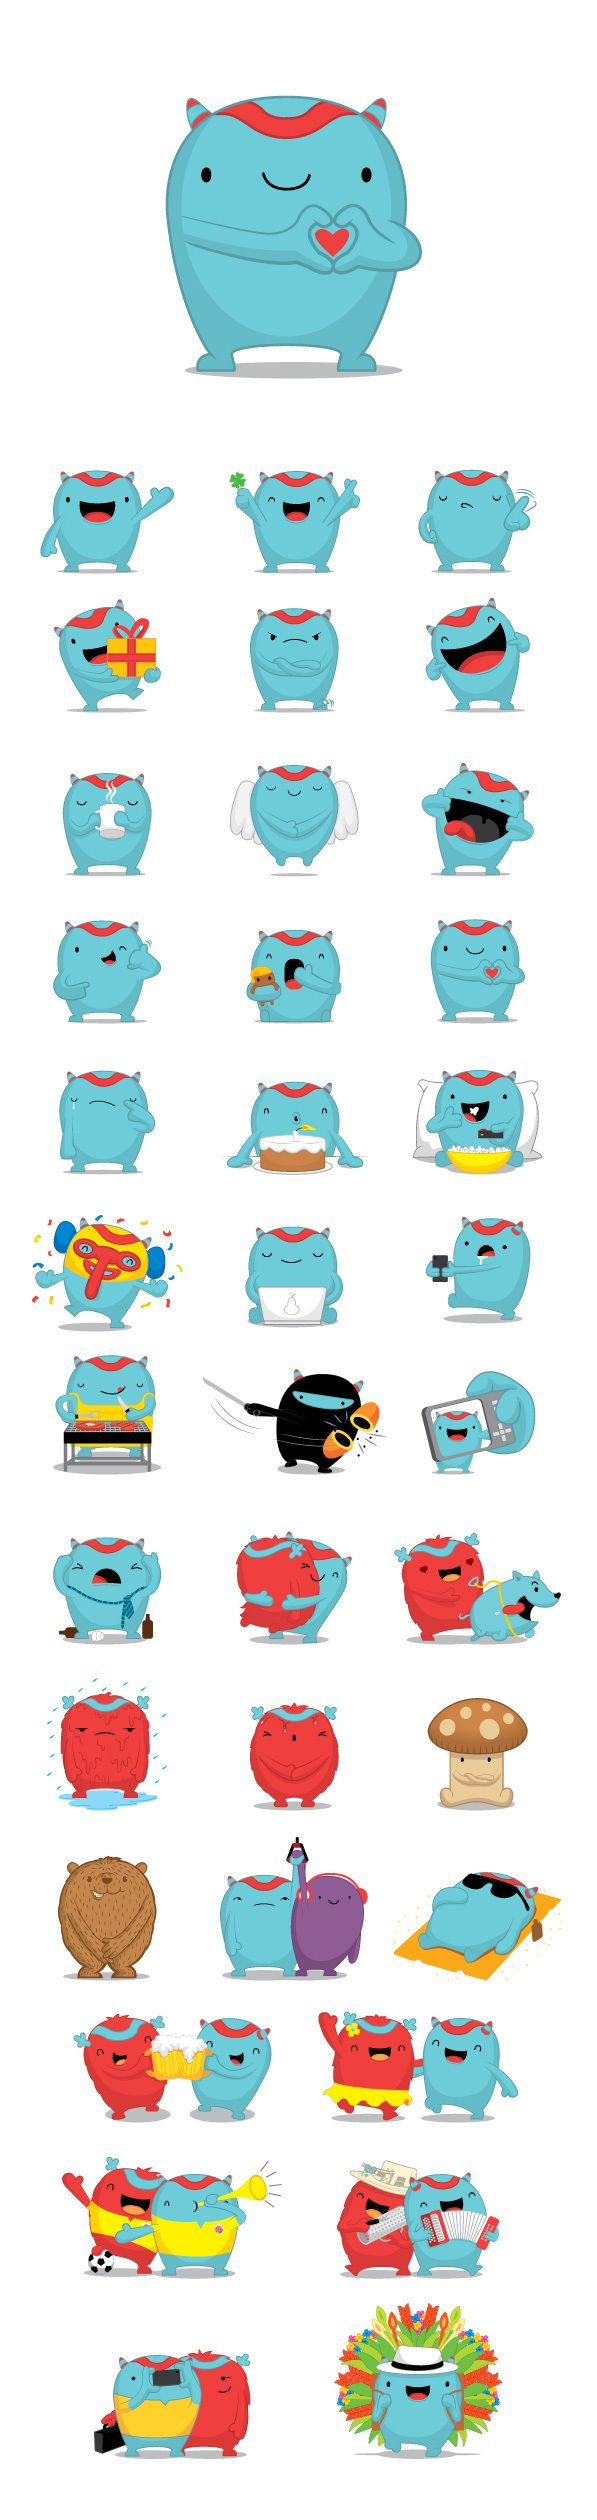 Cute Stickers For Facebook Stickers For Facebook Messenger By Oscar Ospina Via Behance